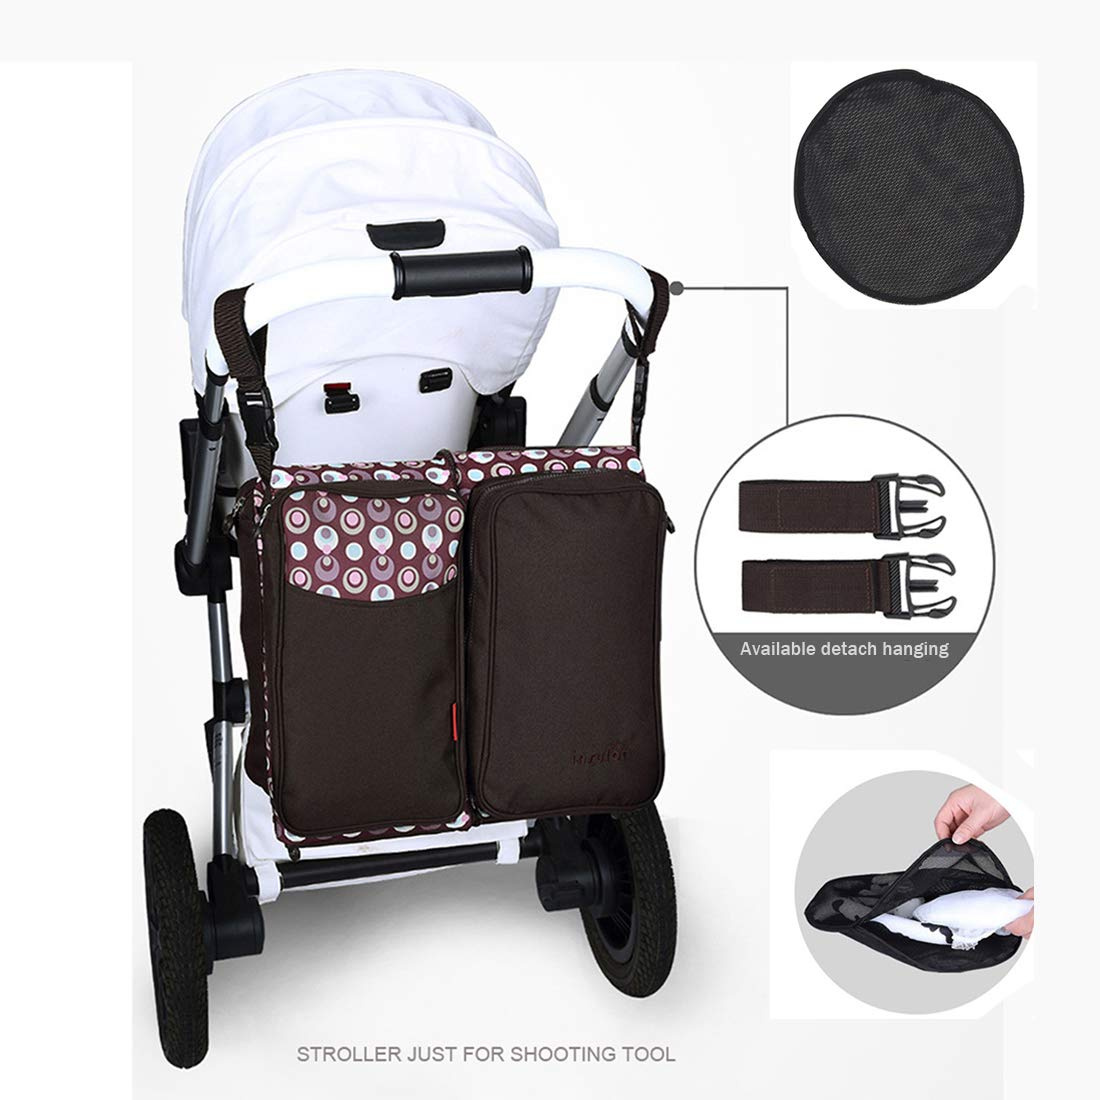 Joolz Day 2 Babyone 3 In 1 Baby Changing Bags Travel Bassinet Nappy Bags Foldable Baby Bed Portable Bassinet With Mosquito Net Large Capacity Mummy Bag Easy Folding For